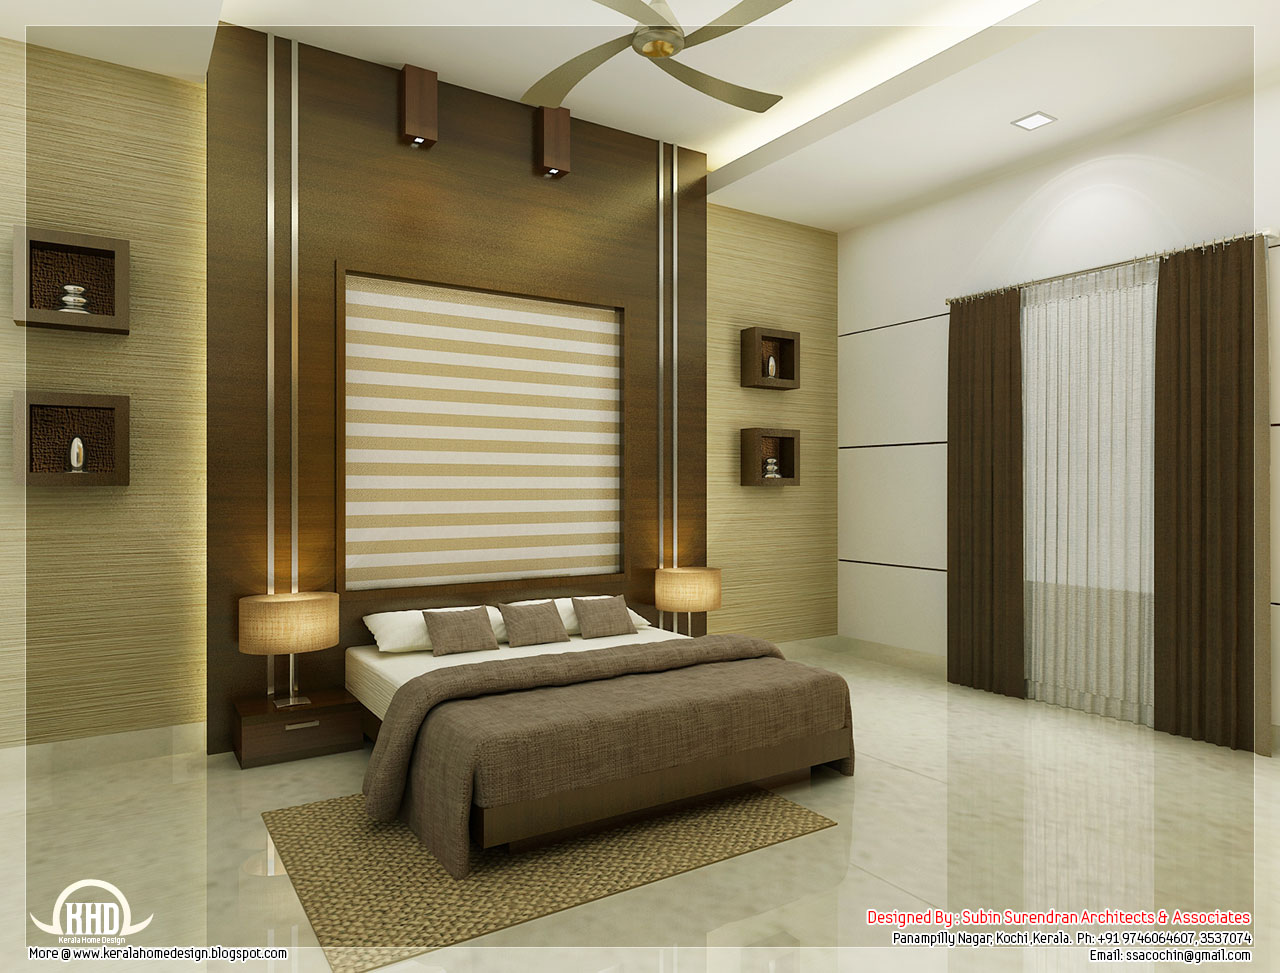 Amazing Beautiful Interior Design Bedrooms 1280 x 973 · 226 kB · jpeg